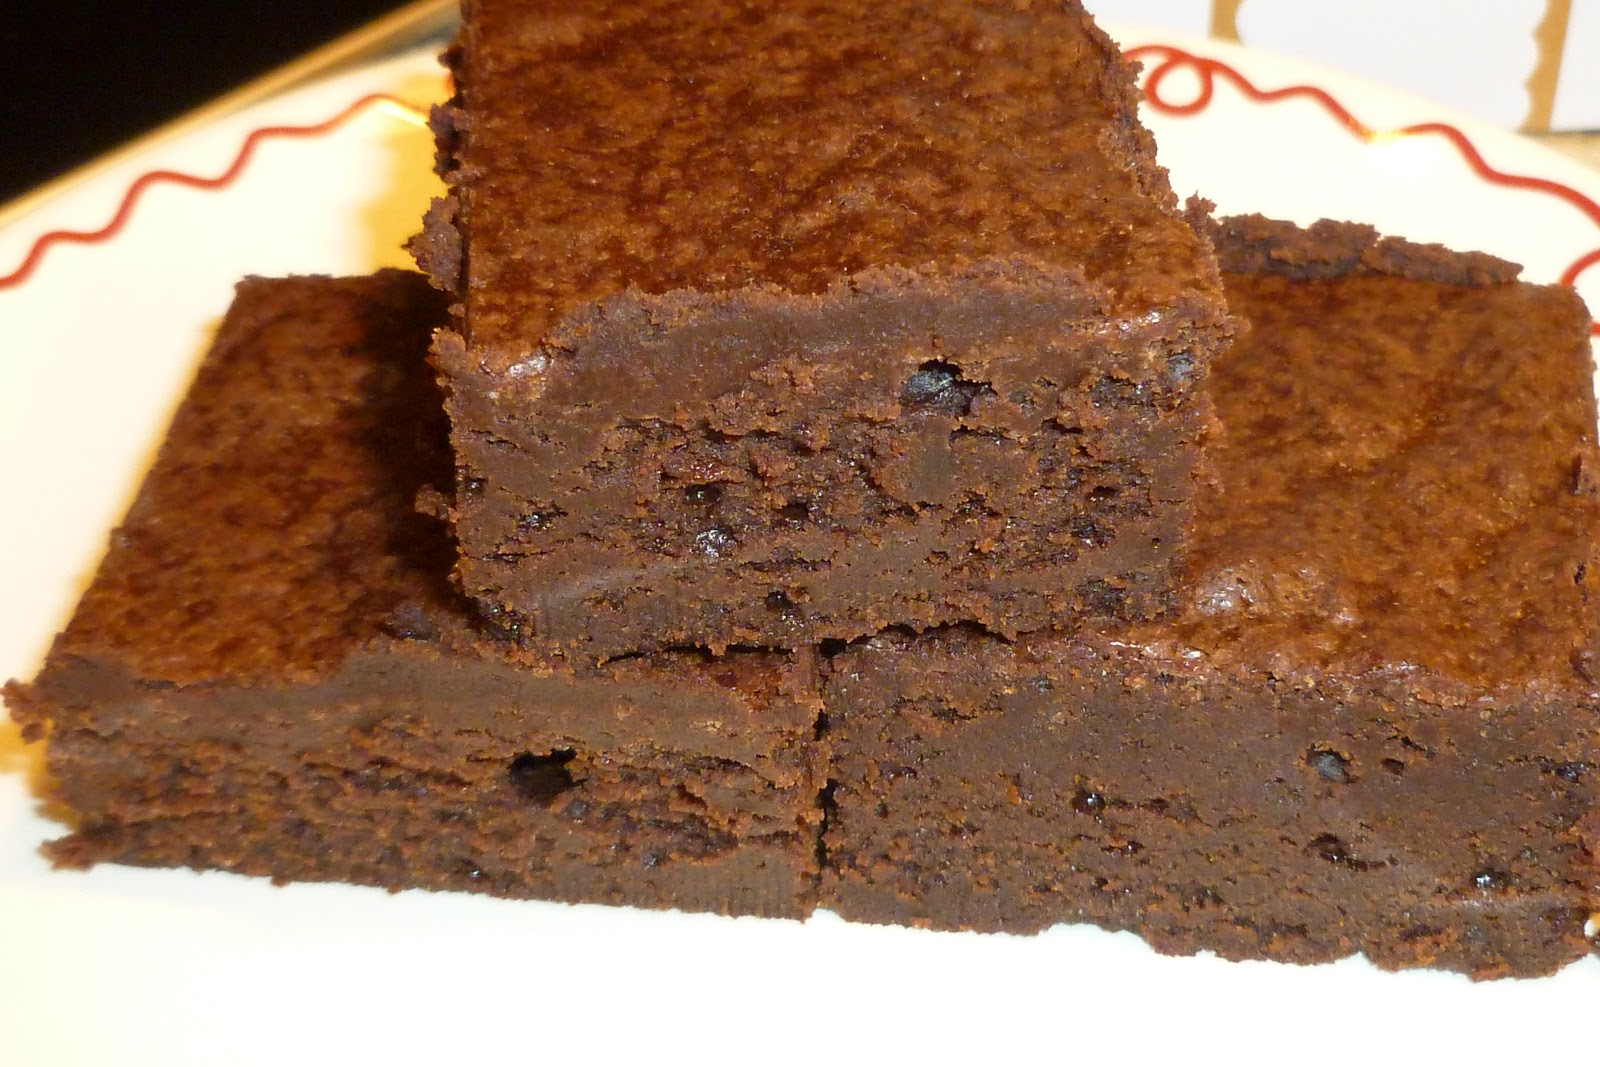 The Pastry Chef's Baking: Truffle Brownies